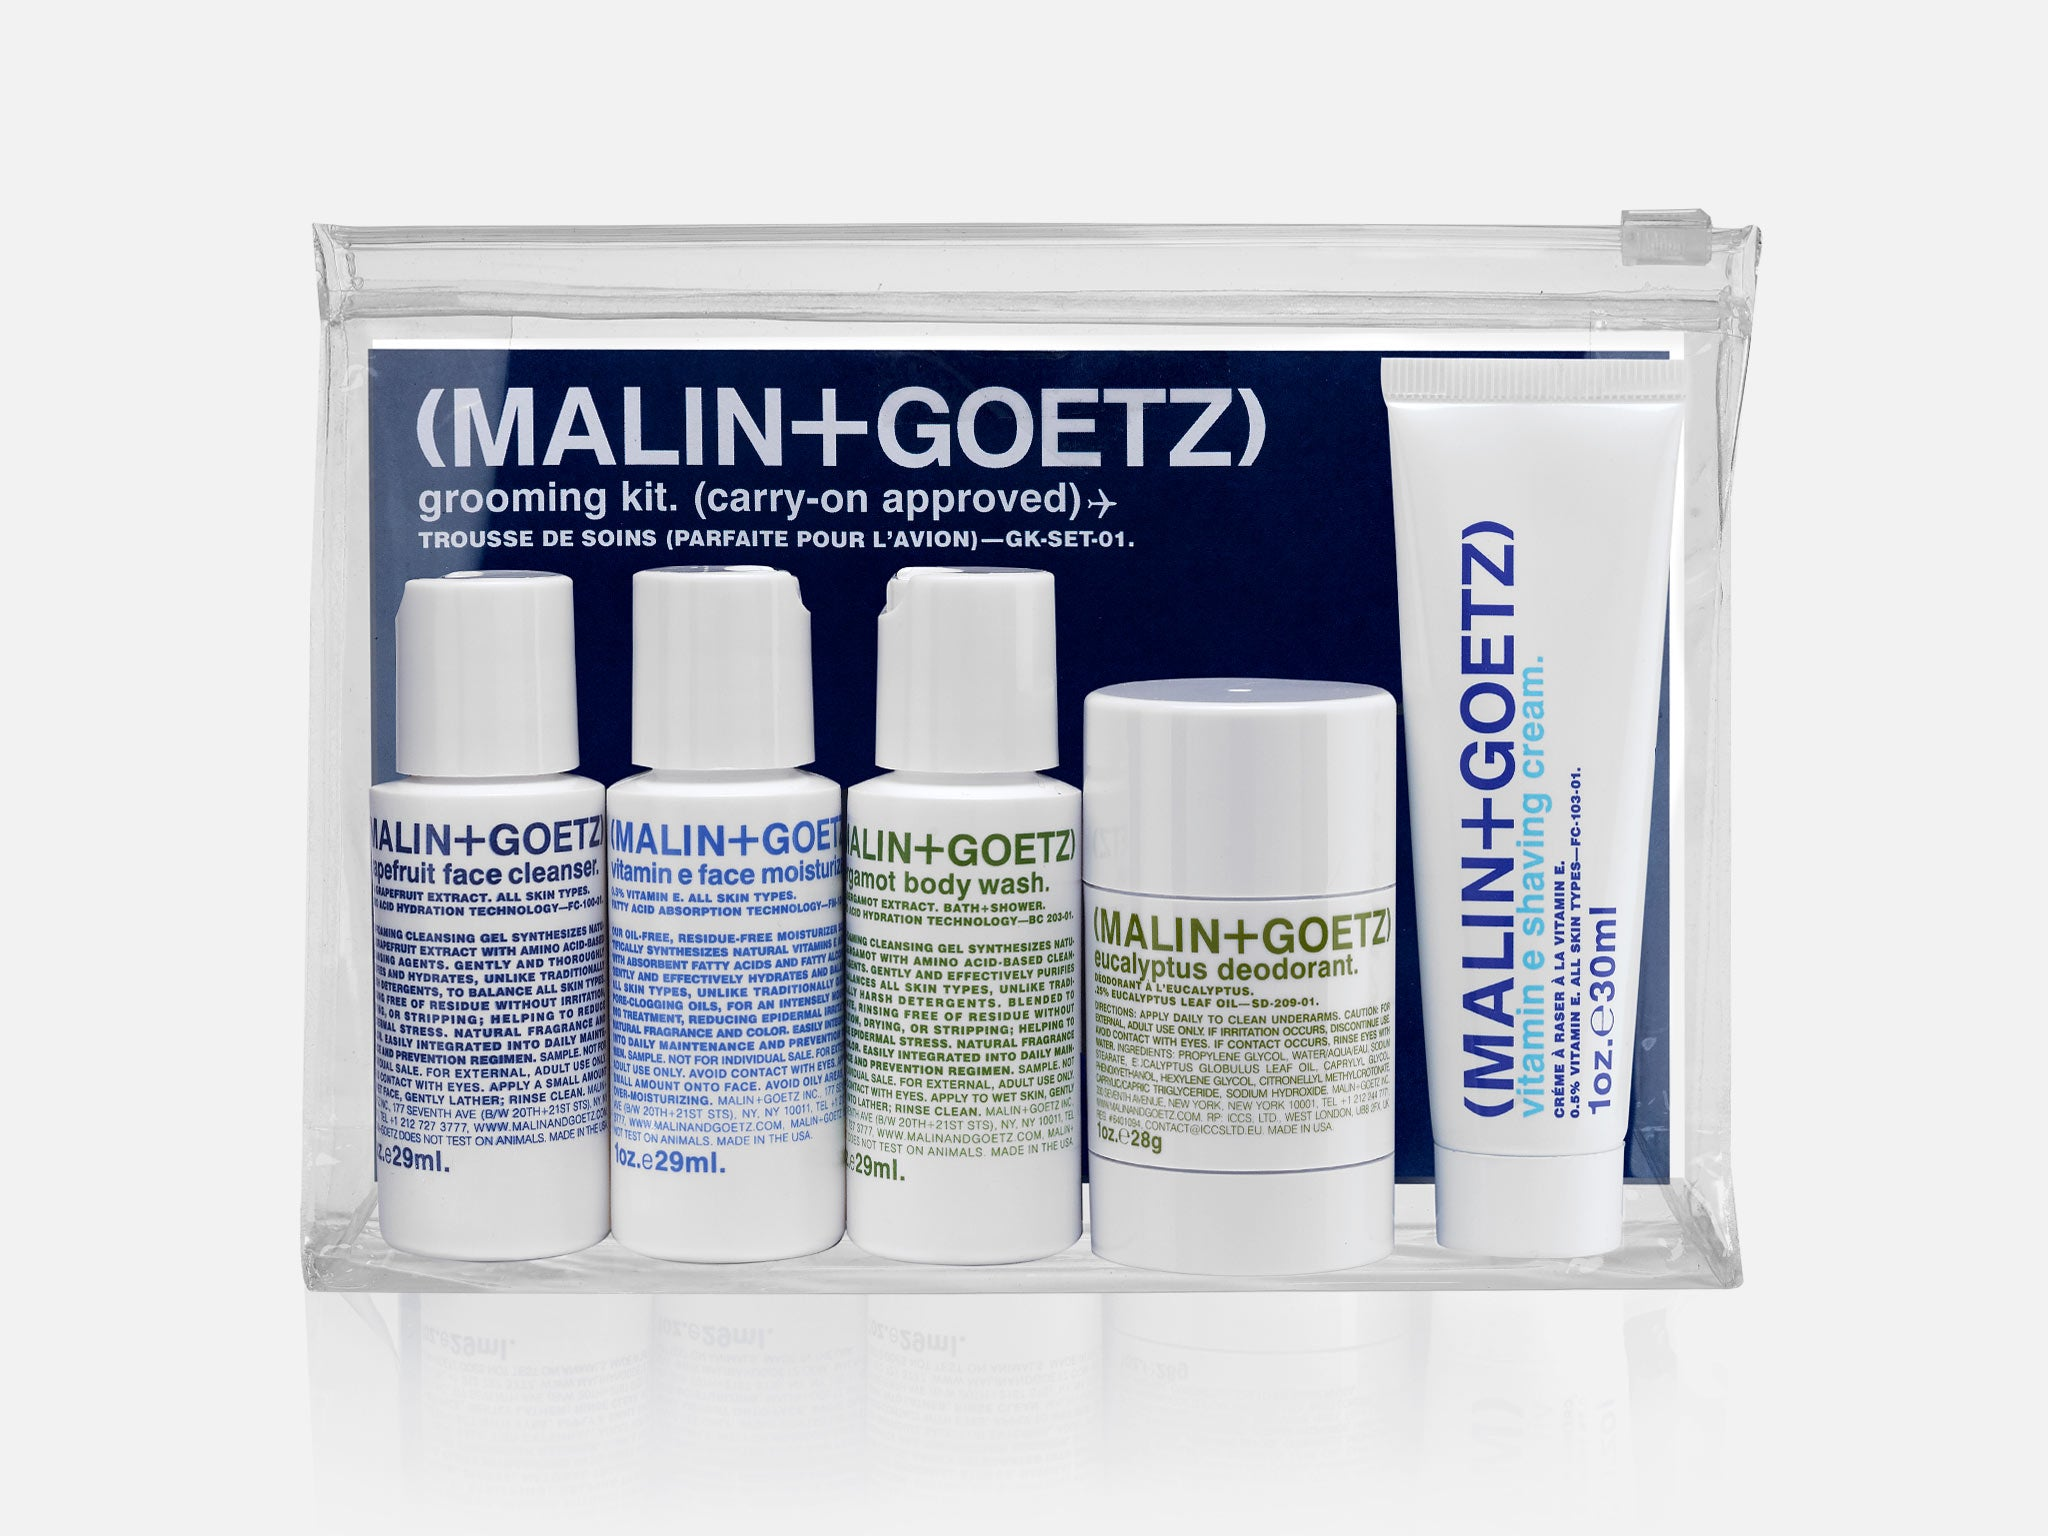 Malin-Goetz-travel-carry-on-approved-grooming-kit.jpg?v=1511203047